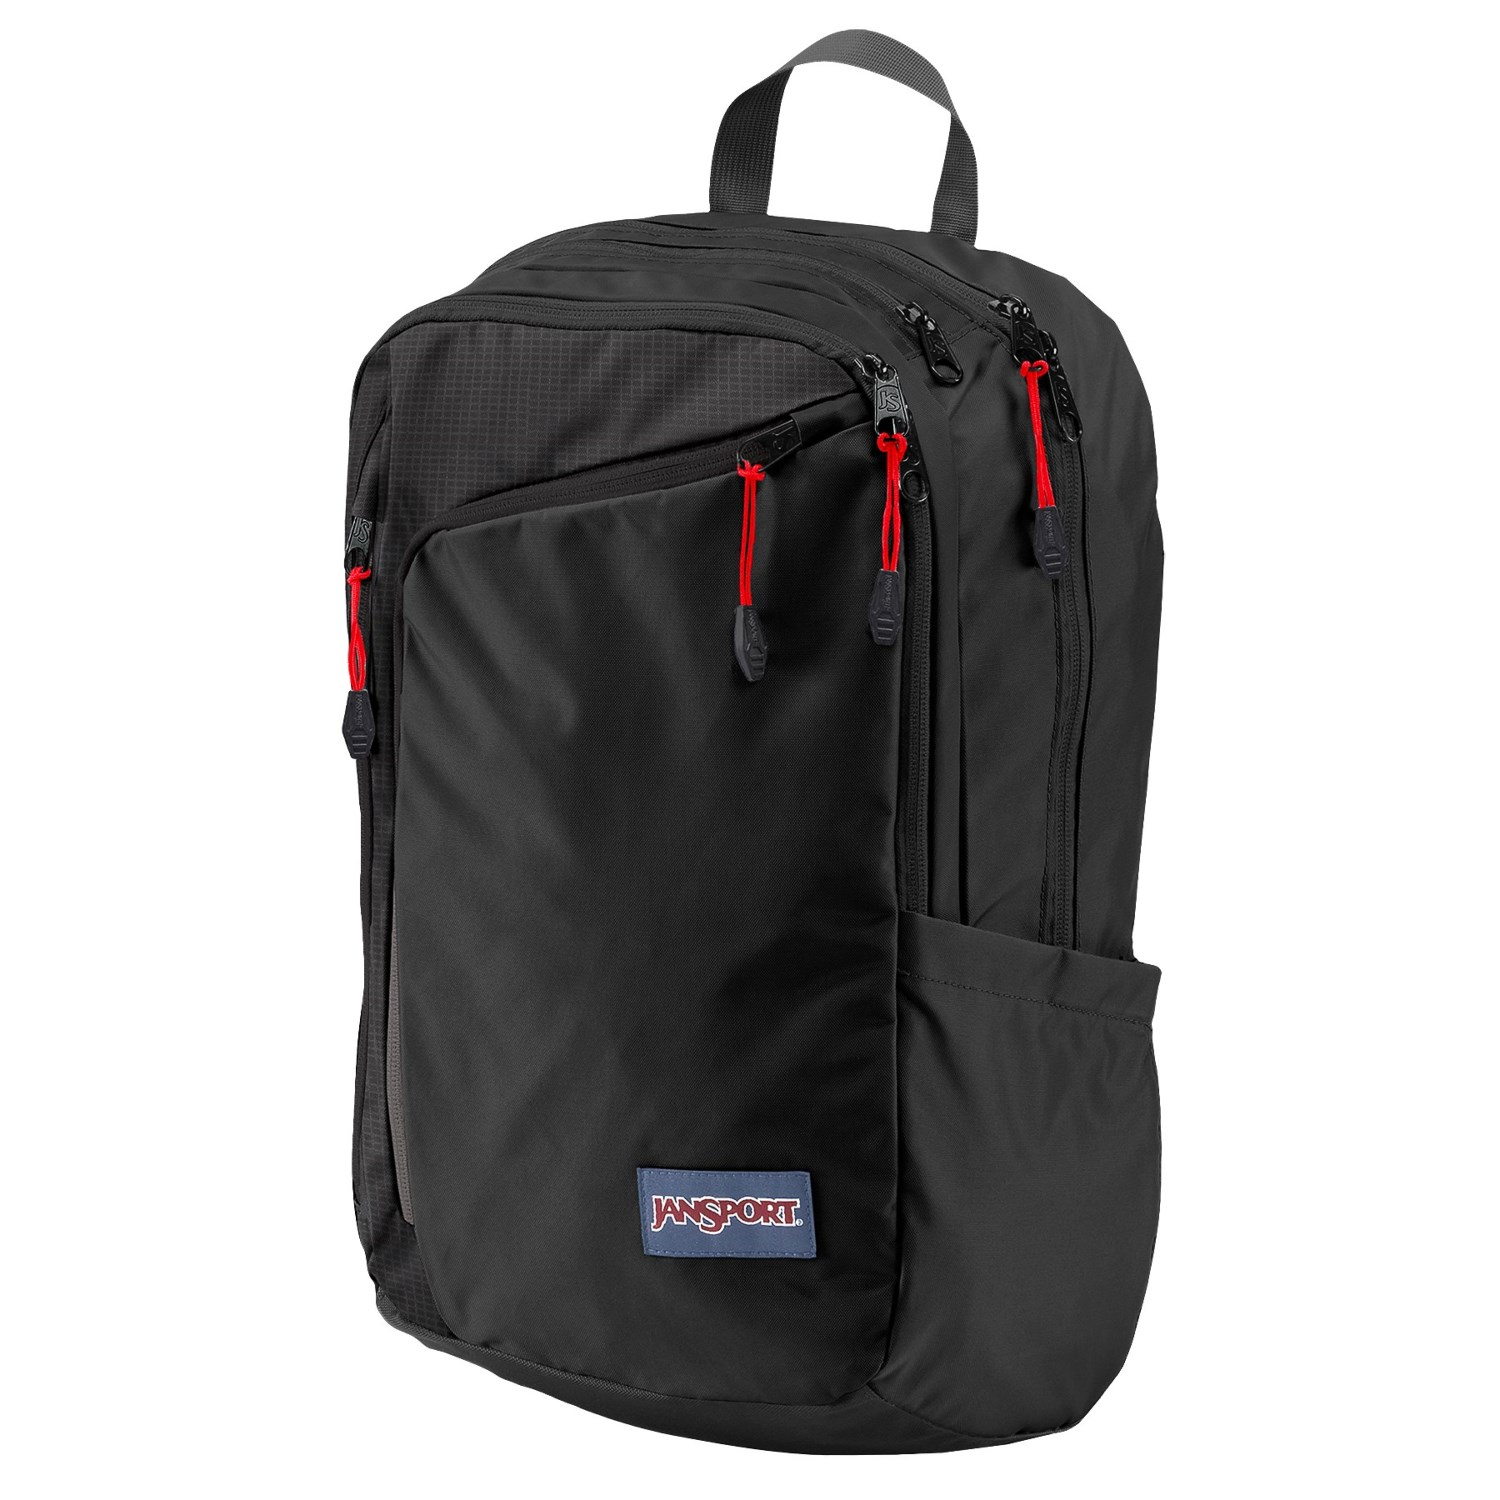 JanSport Platform Laptop Backpack - Save 33%